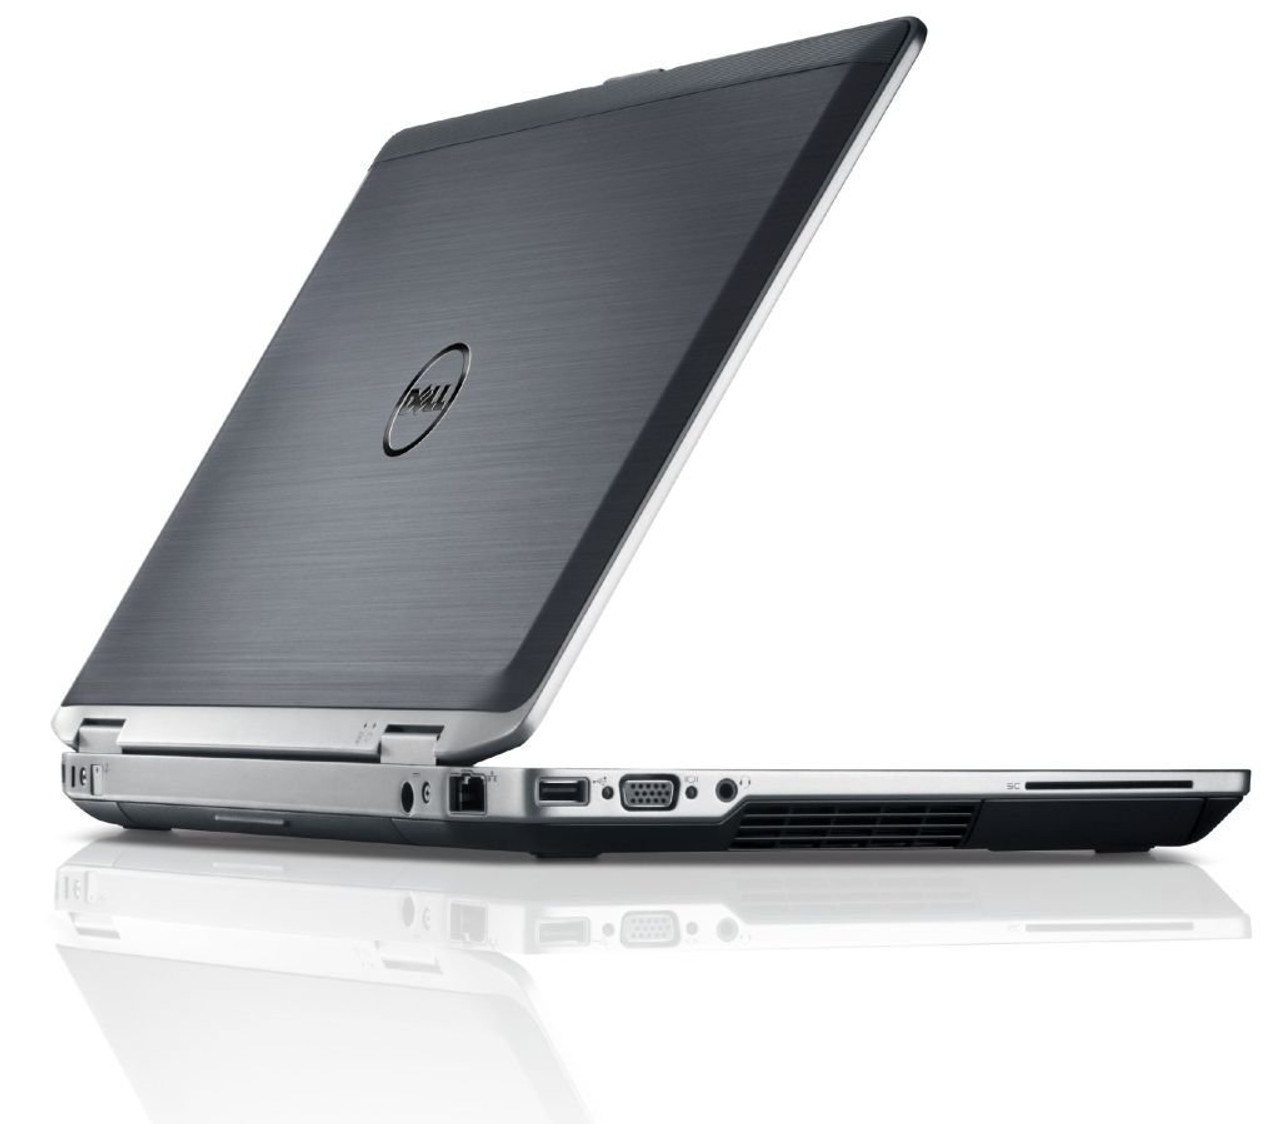 Dell Latitude E6430 Laptop Core i7 3.0GHz, 4GB Ram, 320GB HDD, DVD-RW, Windows 10 Pro 64 Notebook